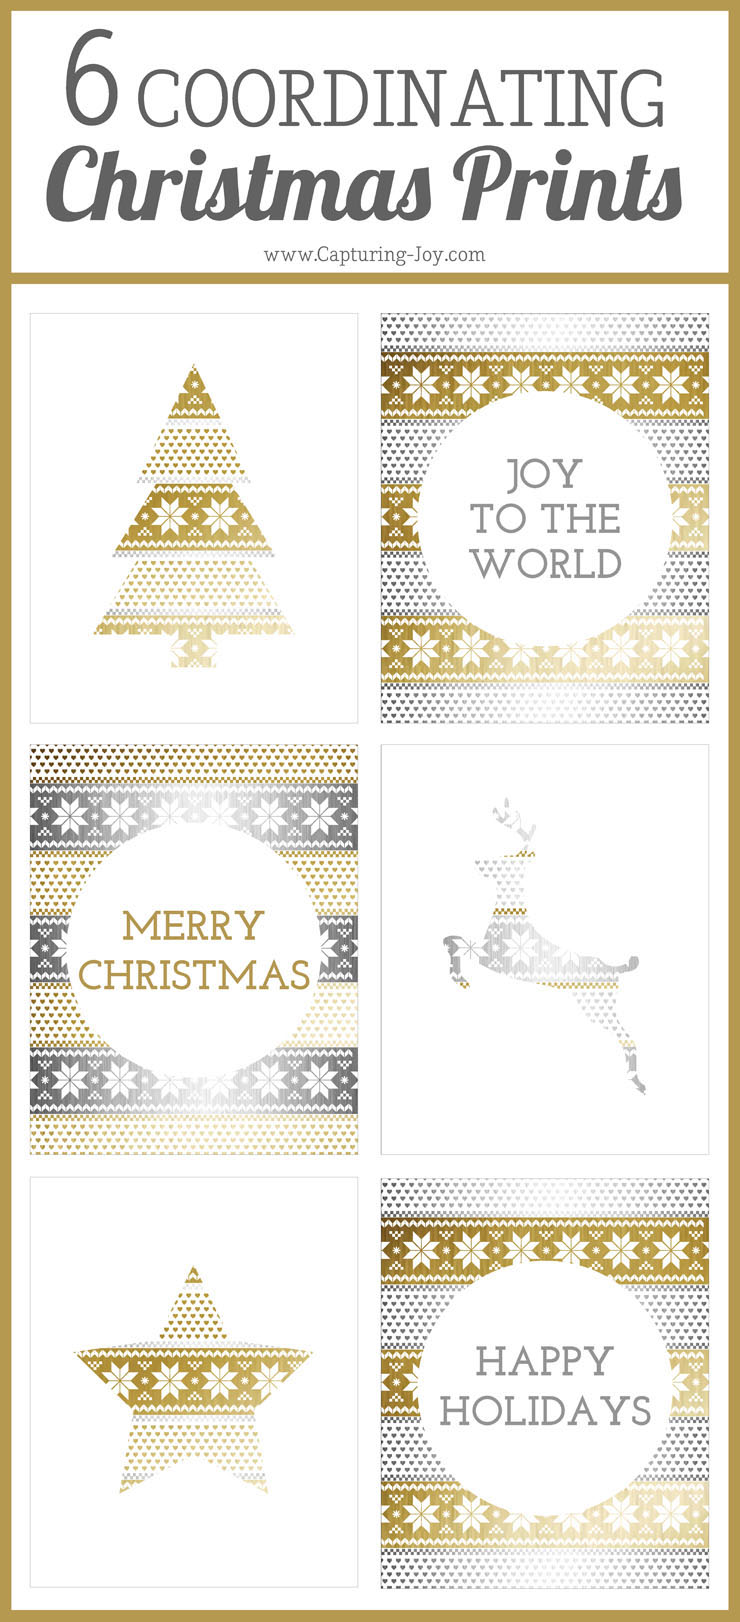 6 prints coordinating Christmas prints in gold and silver